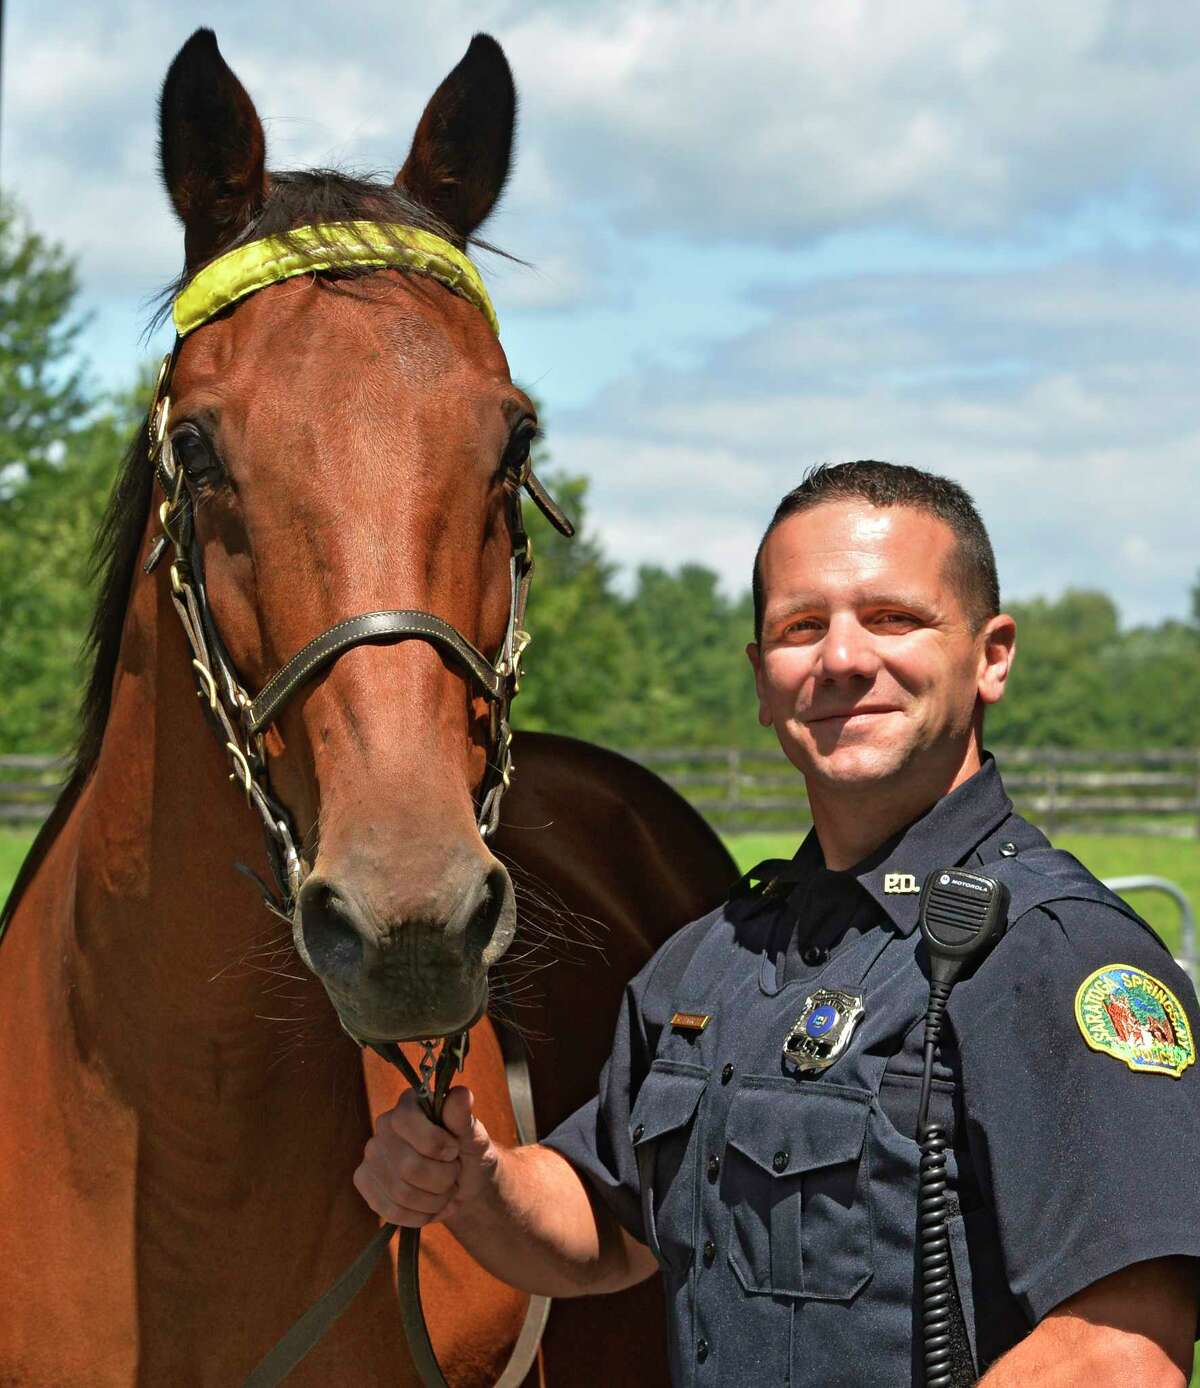 Saratoga Police officer Glenn Barrett stands with his partner, 18-year-old Jupiter, Thursday afternoon Aug. 14, 2014, in Saratoga Springs, N.Y. (Skip Dickstein/Times Union)